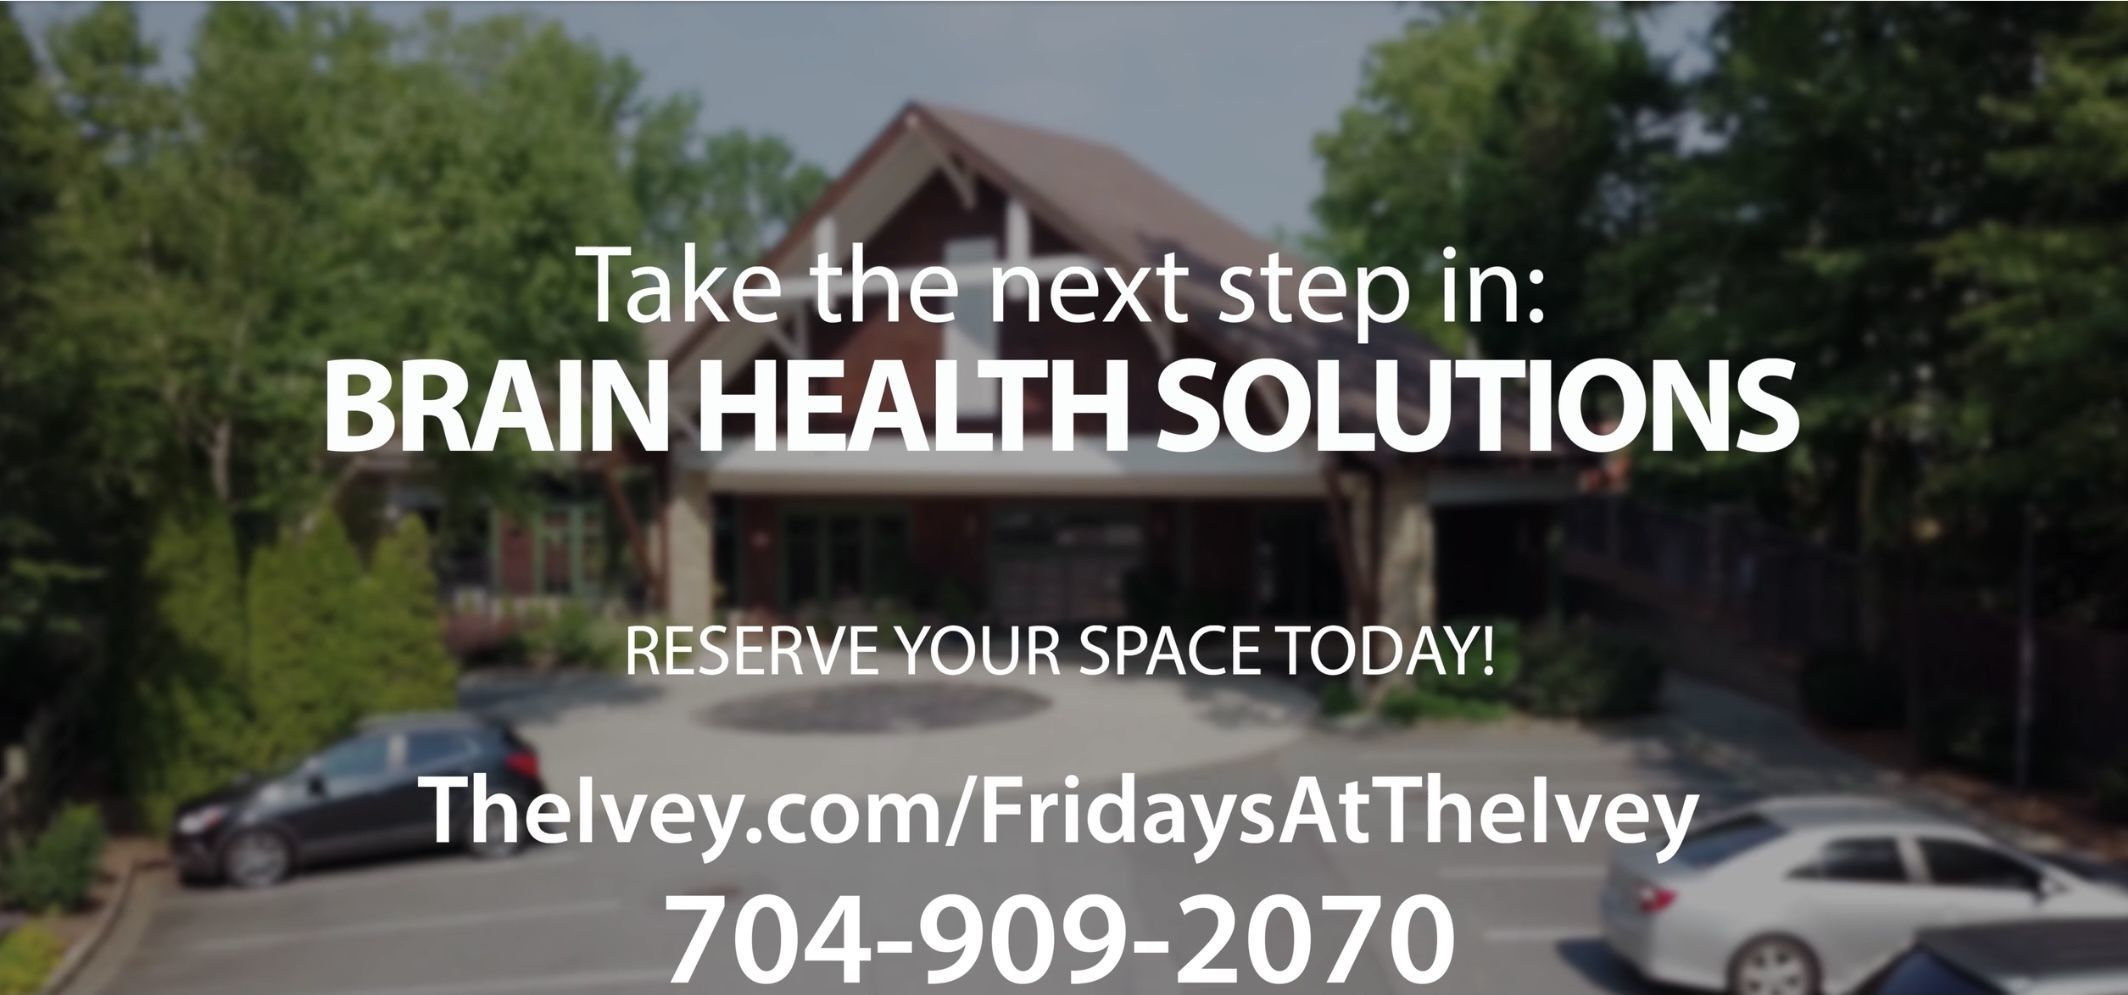 Brain Health Solutions/Fridays-At-The Ivey is just 10 days away!